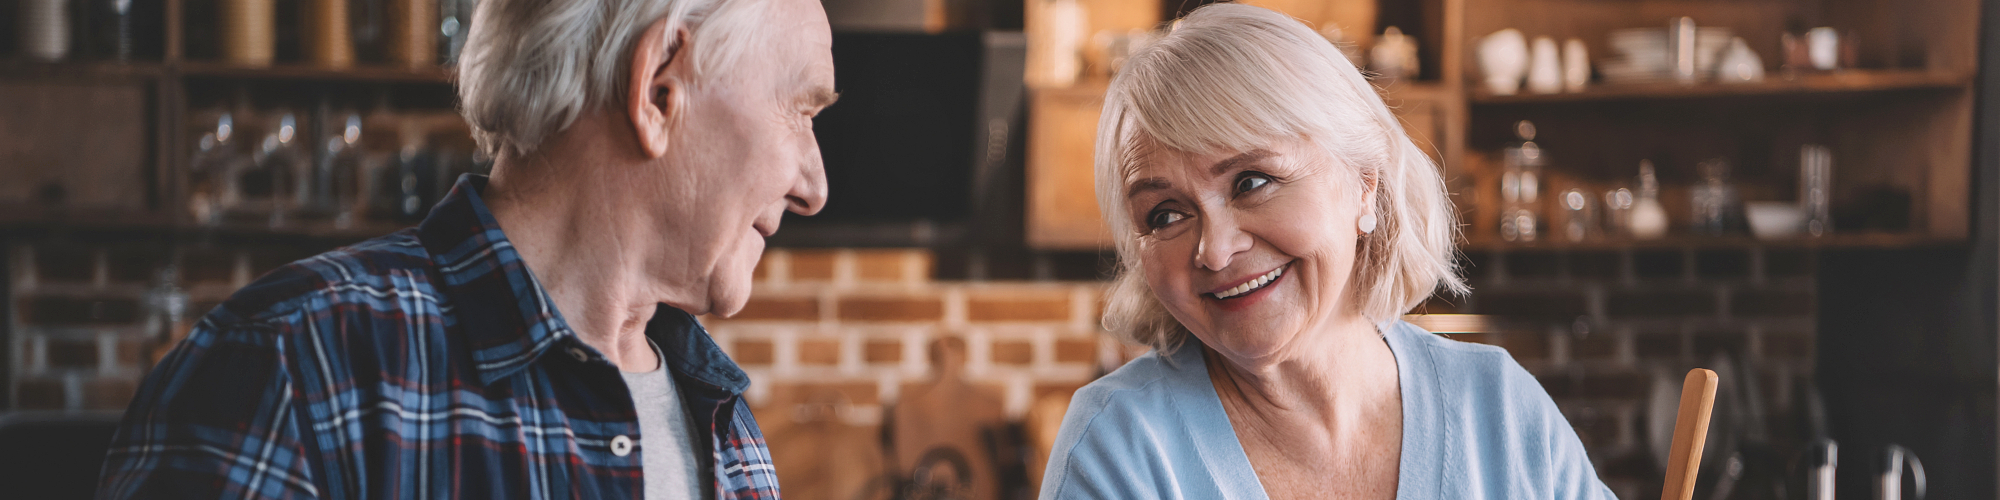 old couple looking each other while smiling